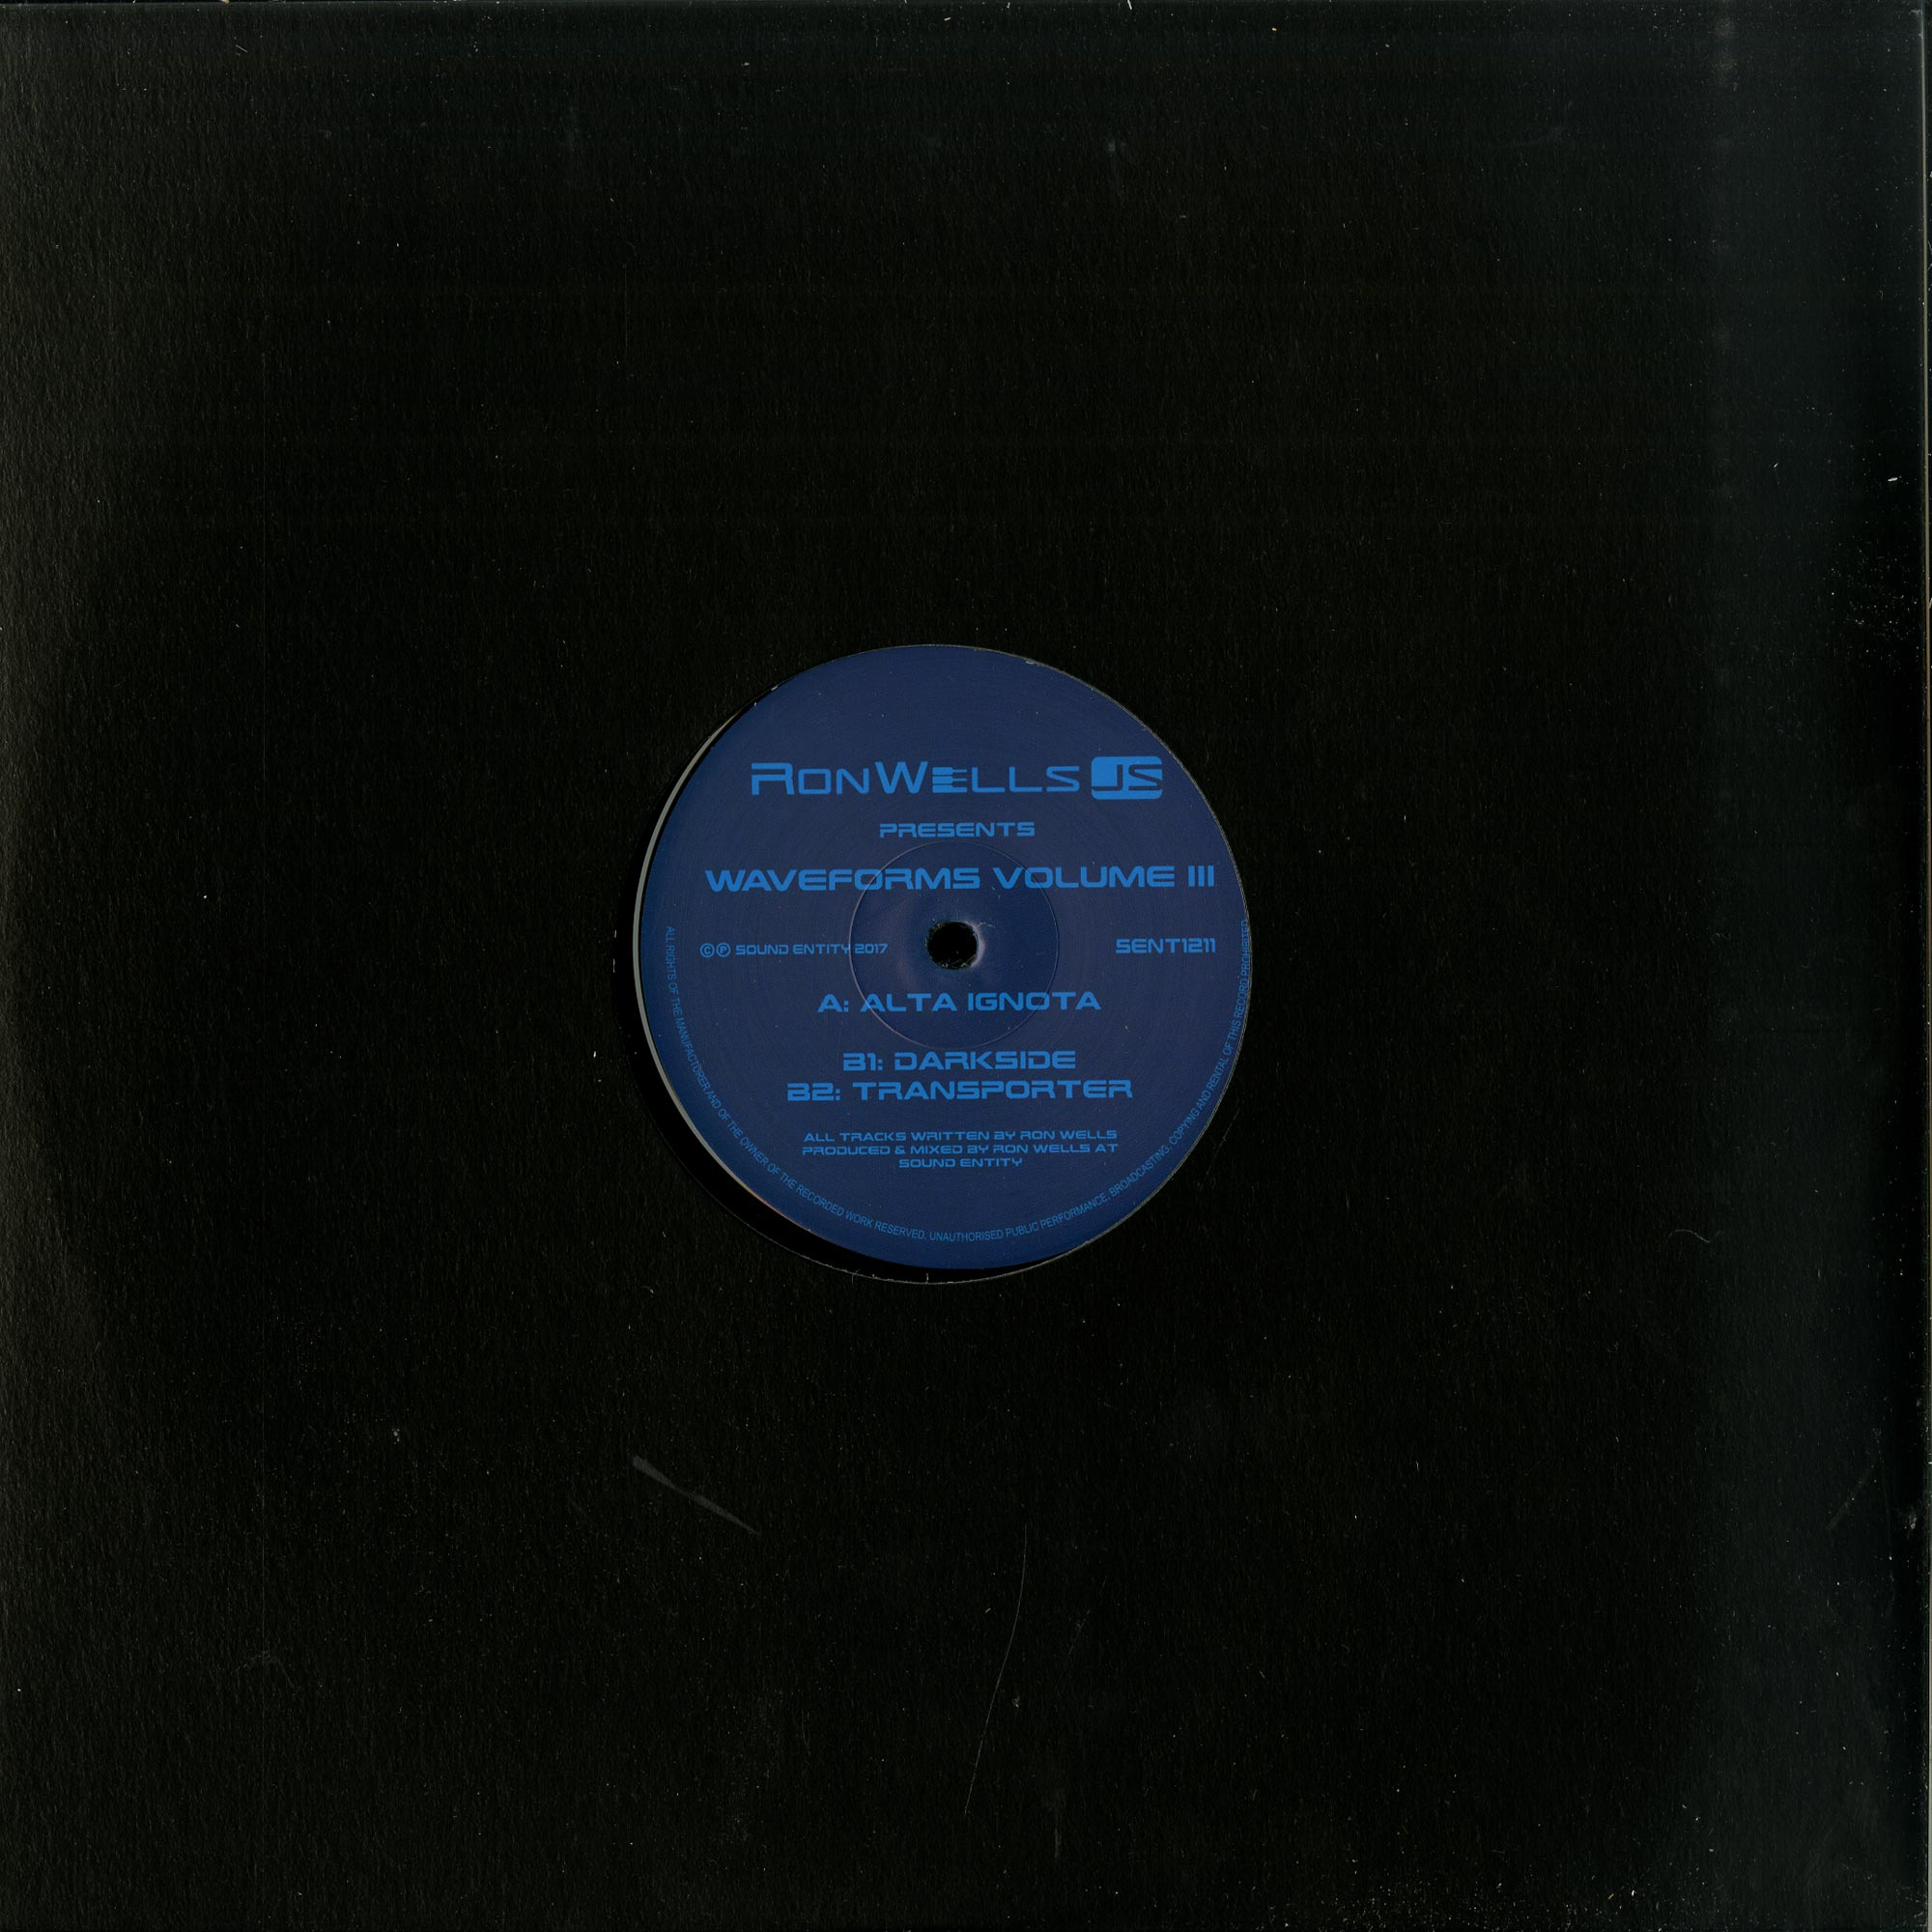 Ron Wells - WAVEFORMS VOL. III